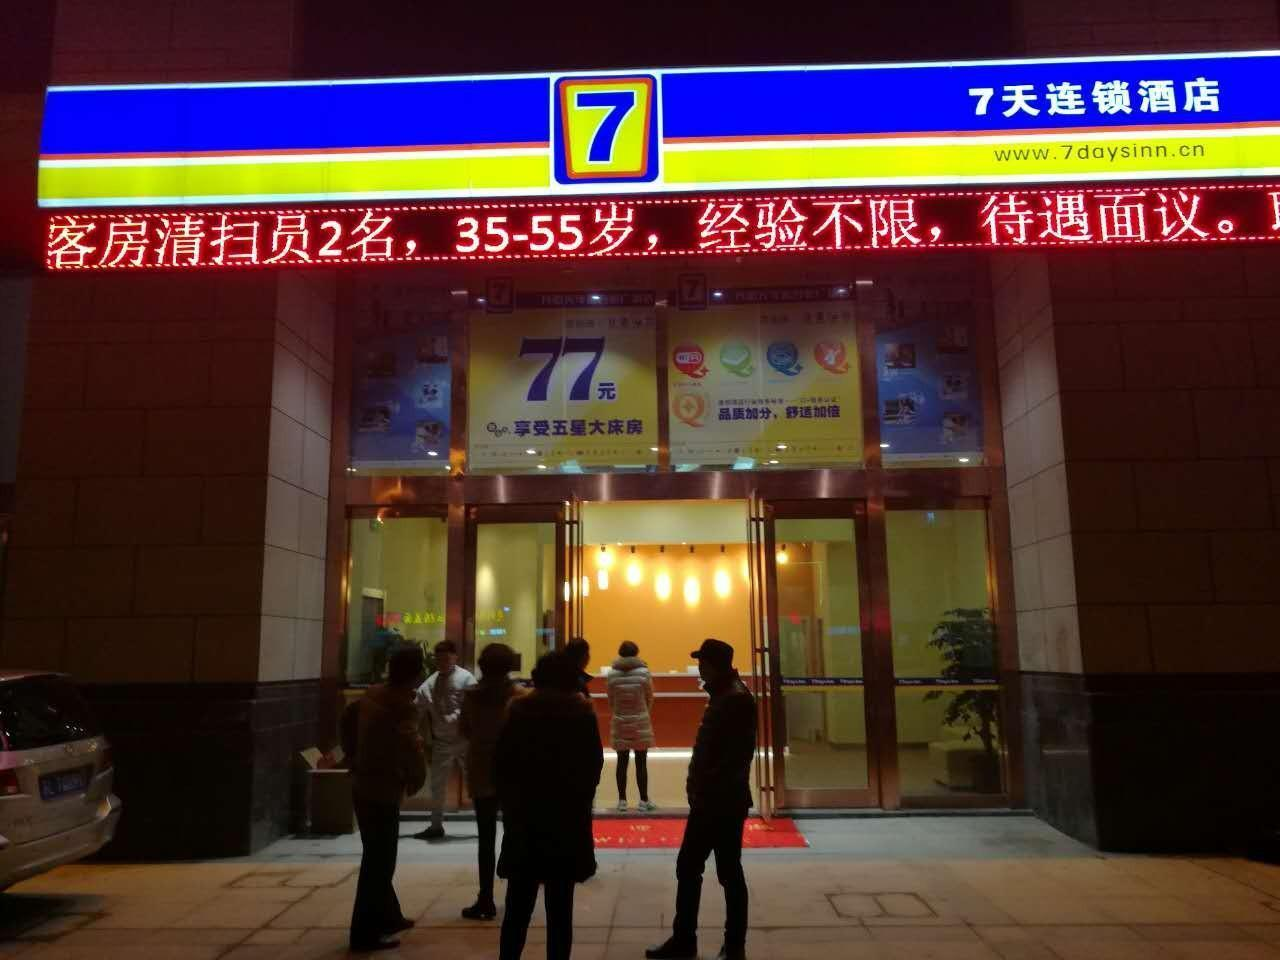 7 Days Inn·Danyang Railway Station Wuyuan Square, Zhenjiang